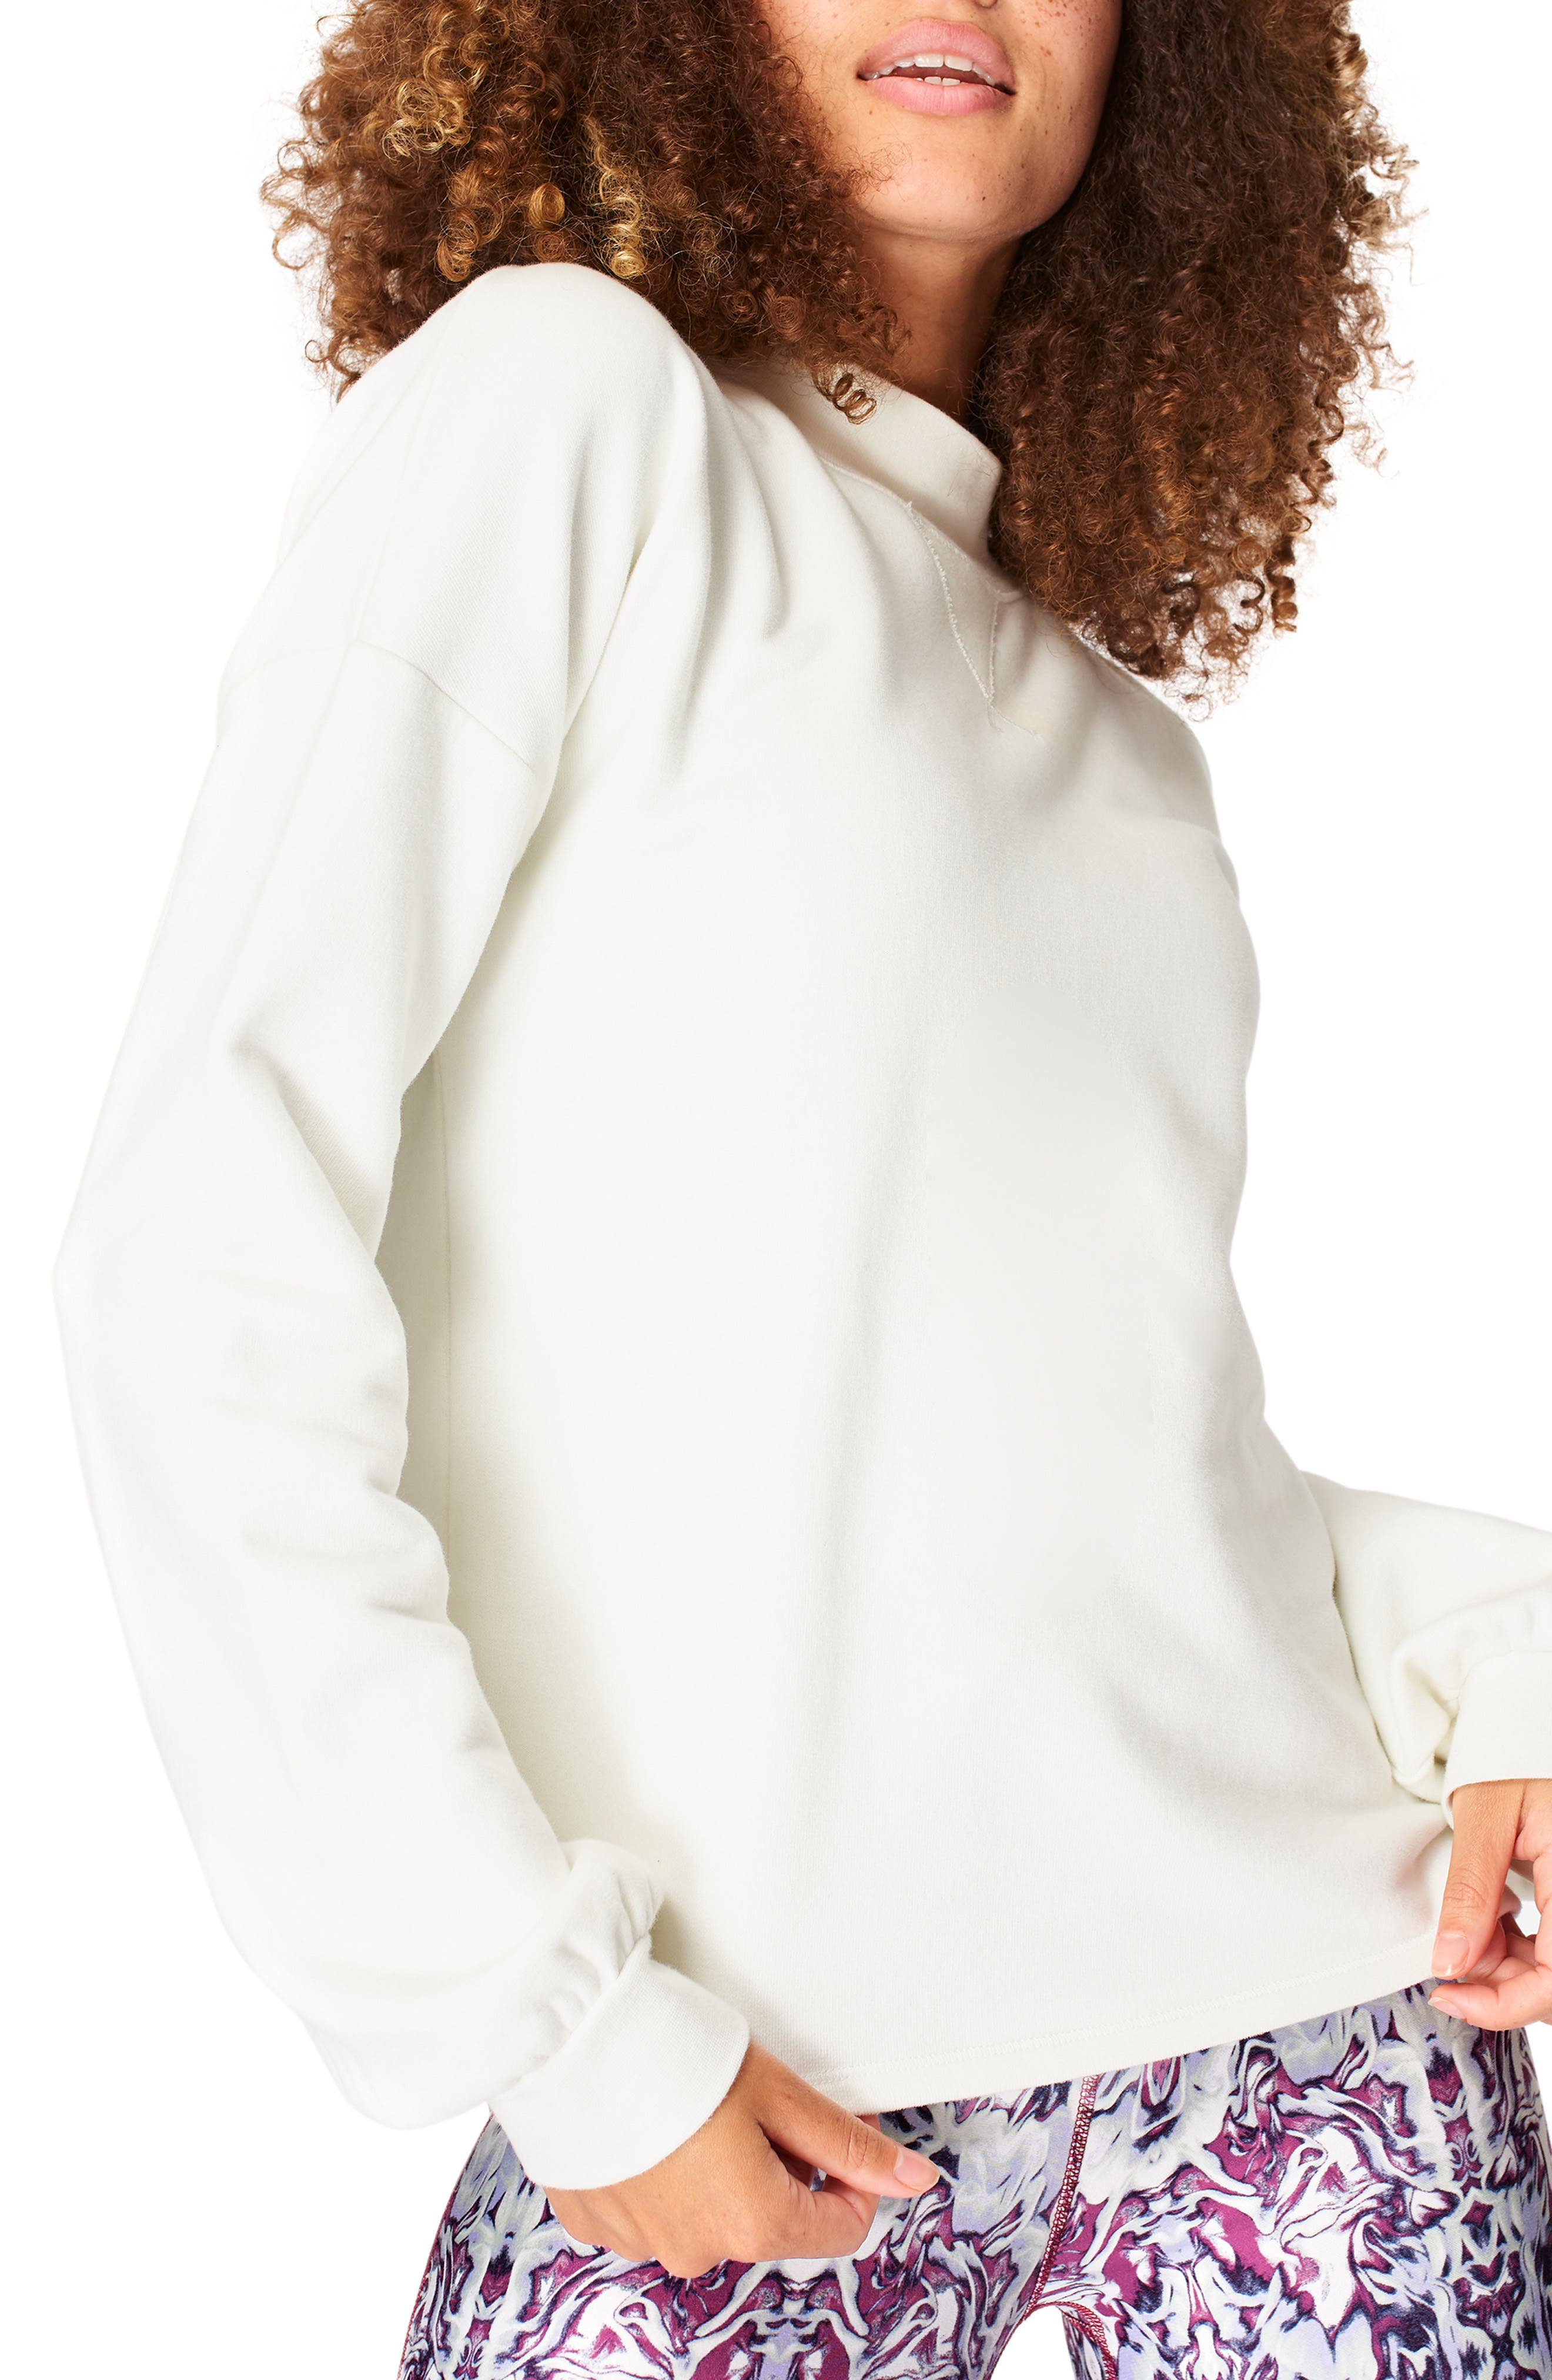 This relaxed sweatshirt designed with a mock neck and breezy open back will keep you comfortable as you go from errands to an afternoon yoga class. Style Name: Sweaty Betty Recline Open Back Sweatshirt. Style Number: 6084153. Available in stores.